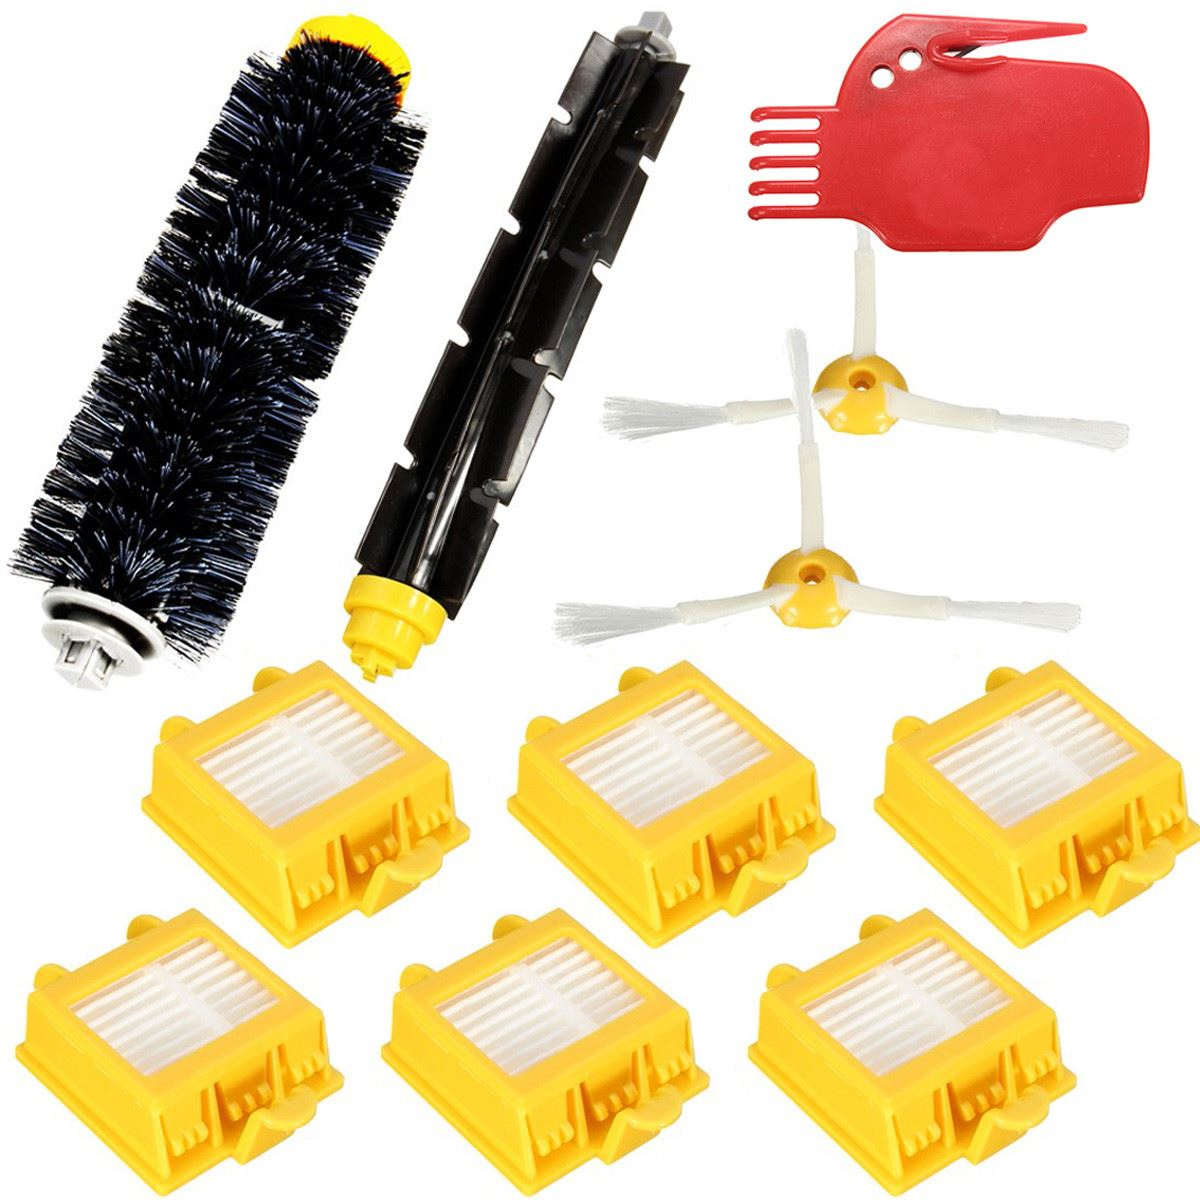 2018 New 11Pcs Hepa Filters And Flexible Beater Bristle Brush Kit 2 Side Brush For i Robot R oomba 700 Series 760 770 780 790 hepa filters bristle brush flexible beater brush 3 armed side brush pack set for irobot roomba 700 series 760 770 780 790 new